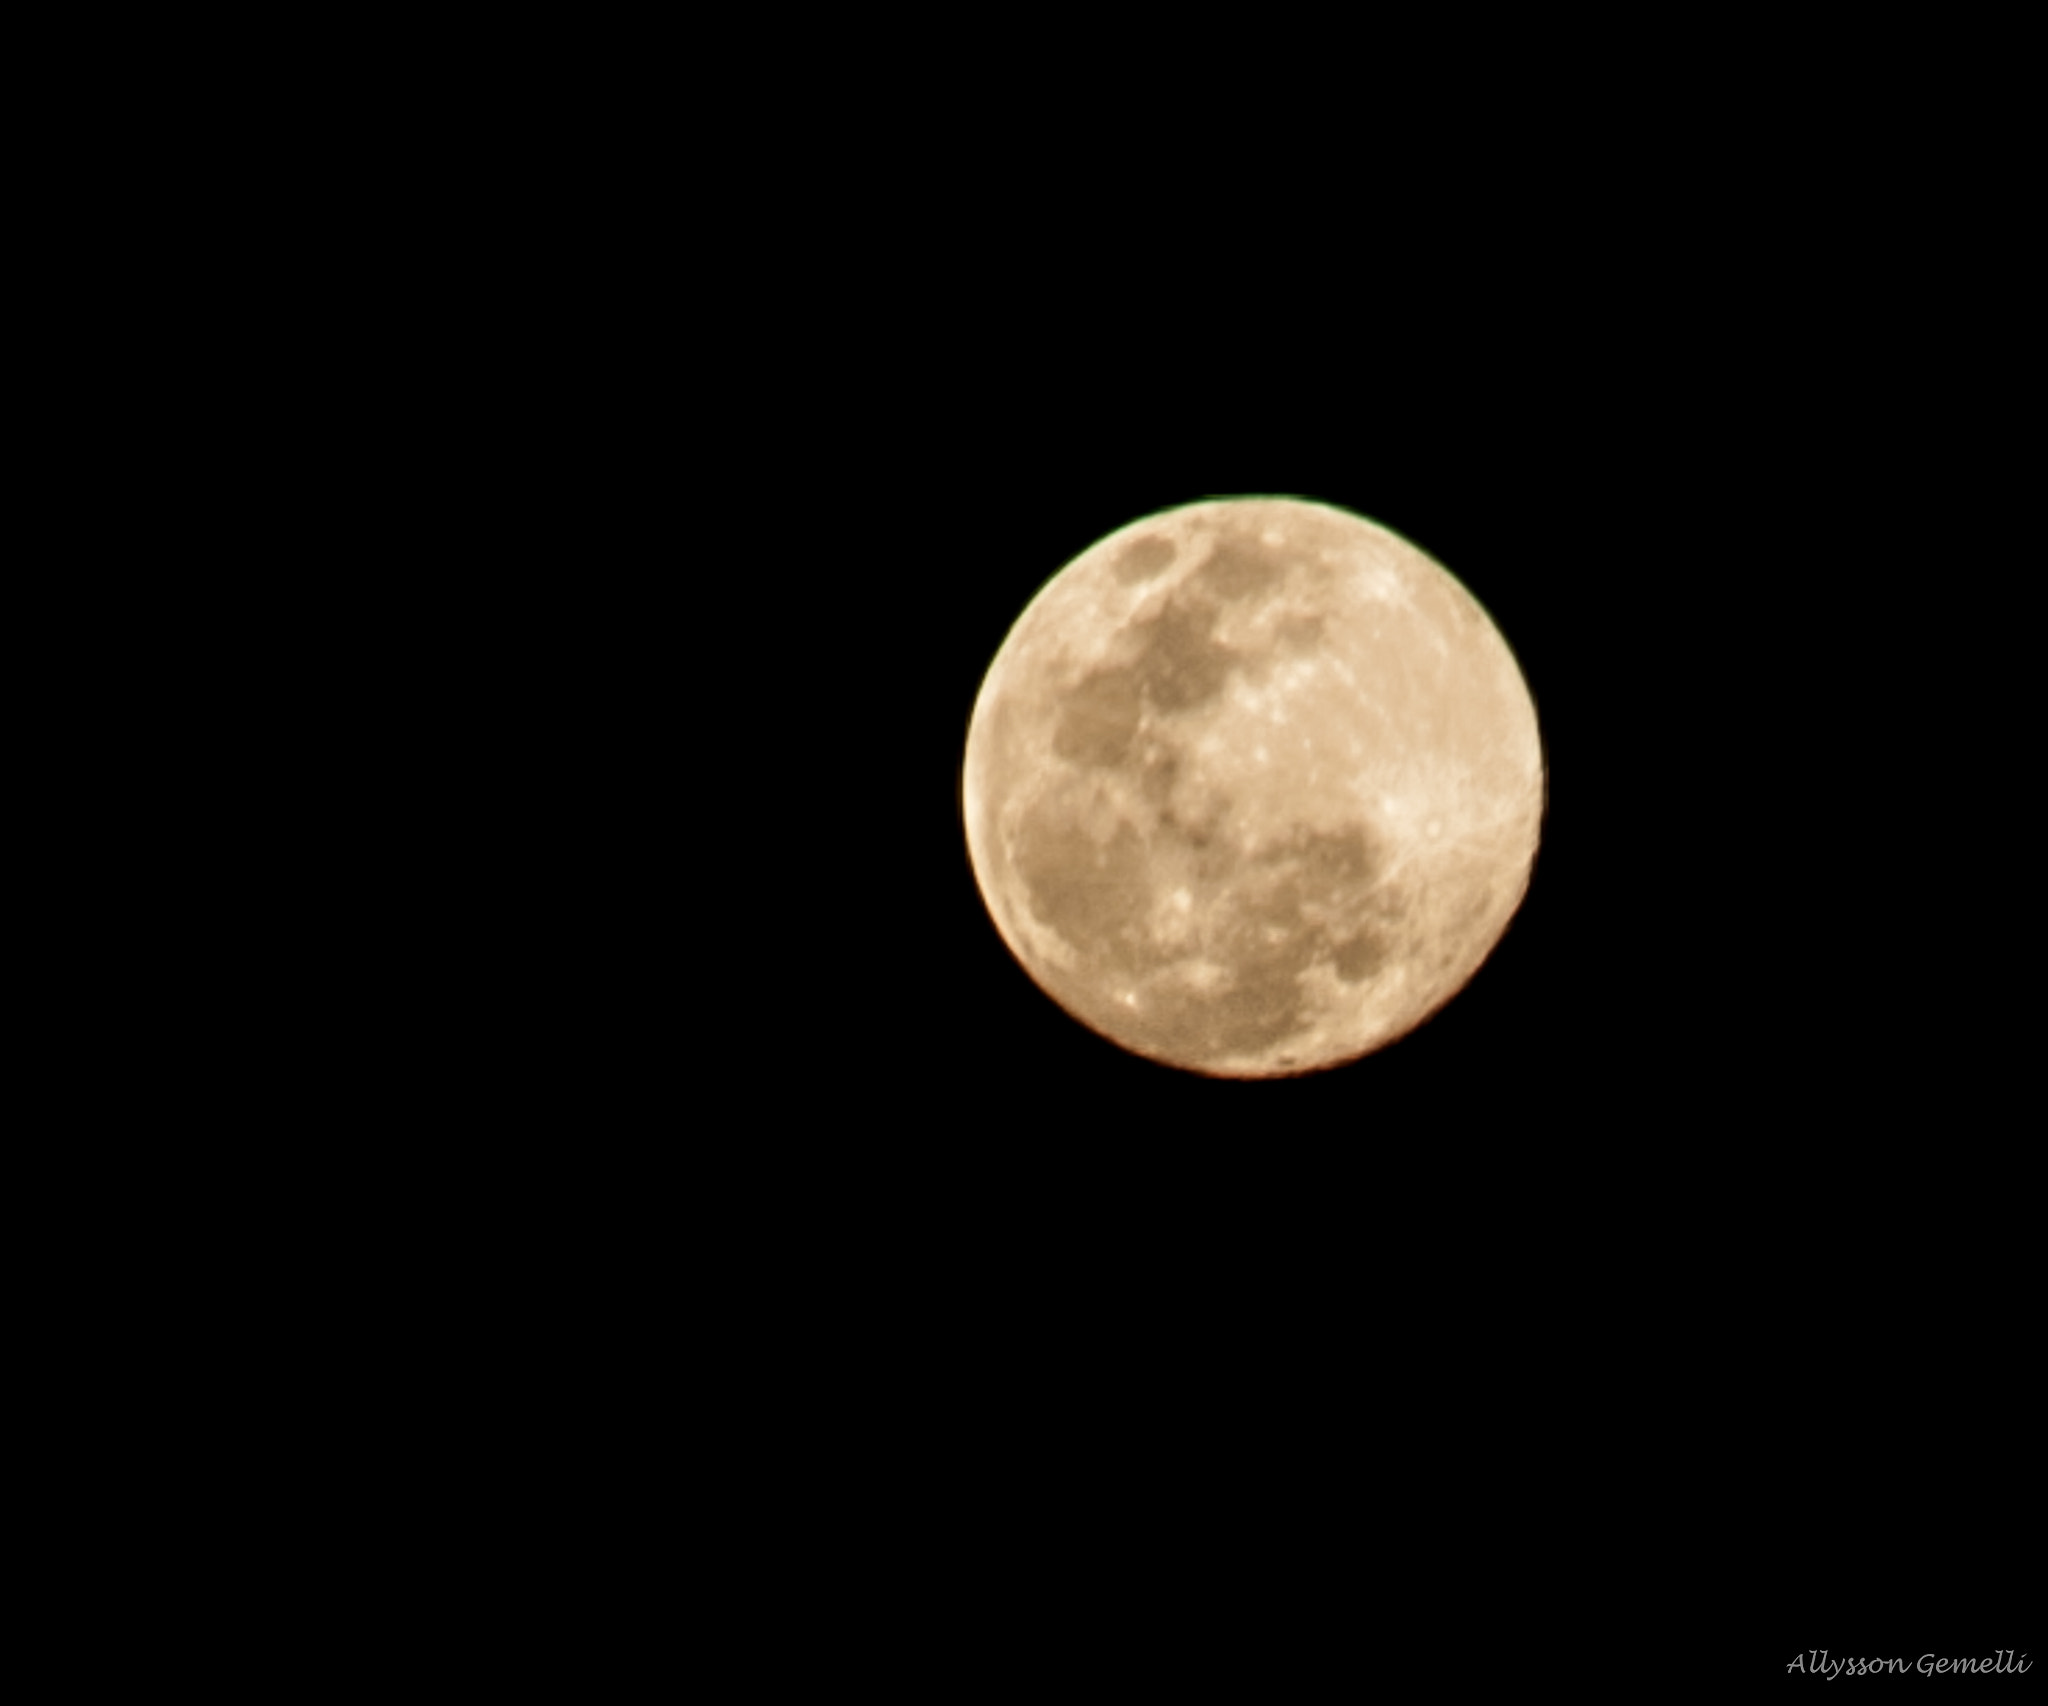 Photograph Moon in Brazil by Allysson Gemelli on 500px